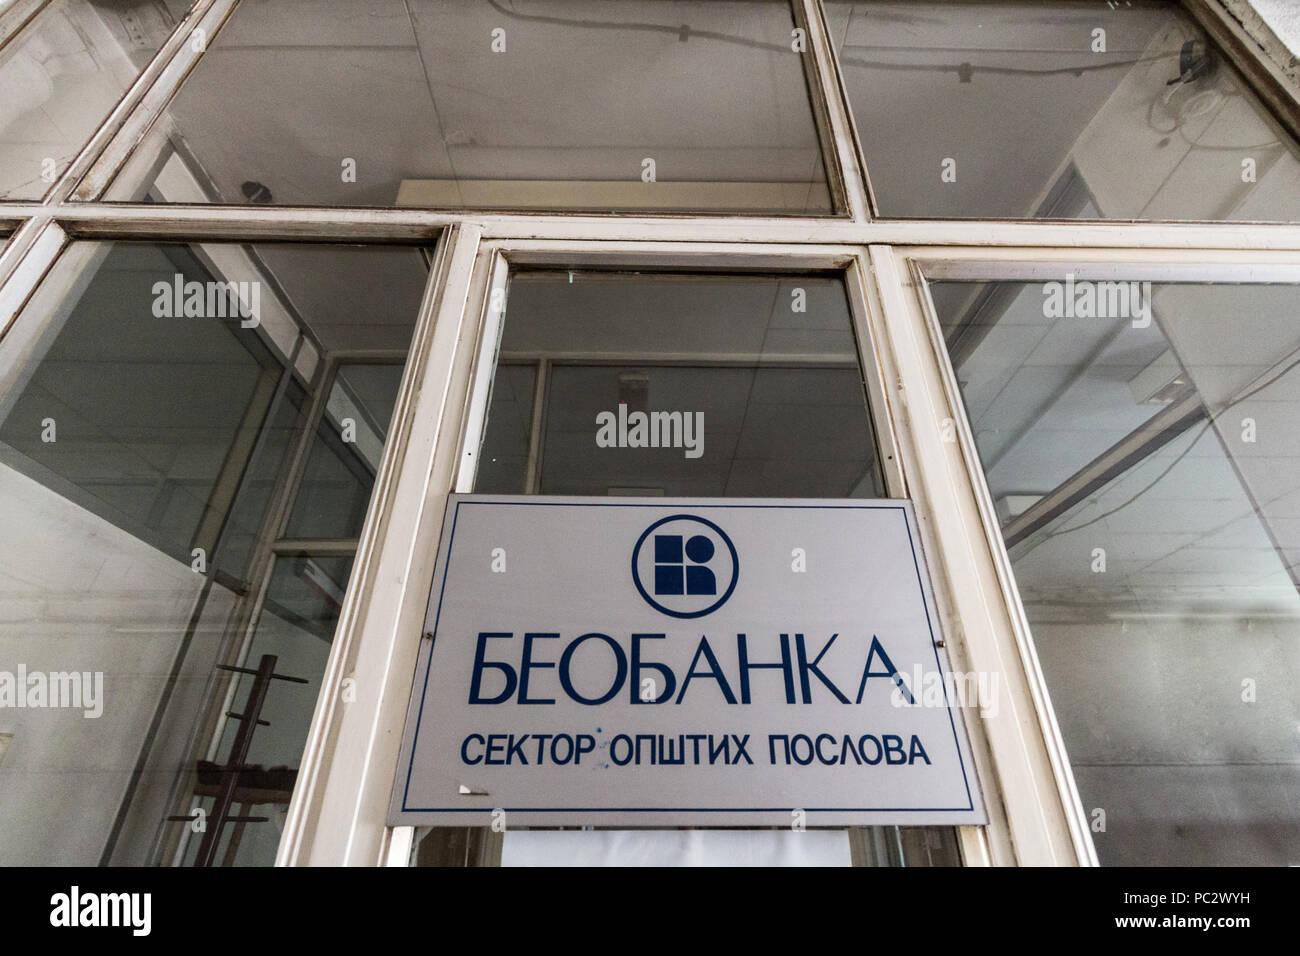 BELGRADE, SERBIA - JULY 19, 2018: Beobanka logo on their former main office in Belgrade. Beobanka was a yugoslav bank that went bankrupt in 2002 and i - Stock Image